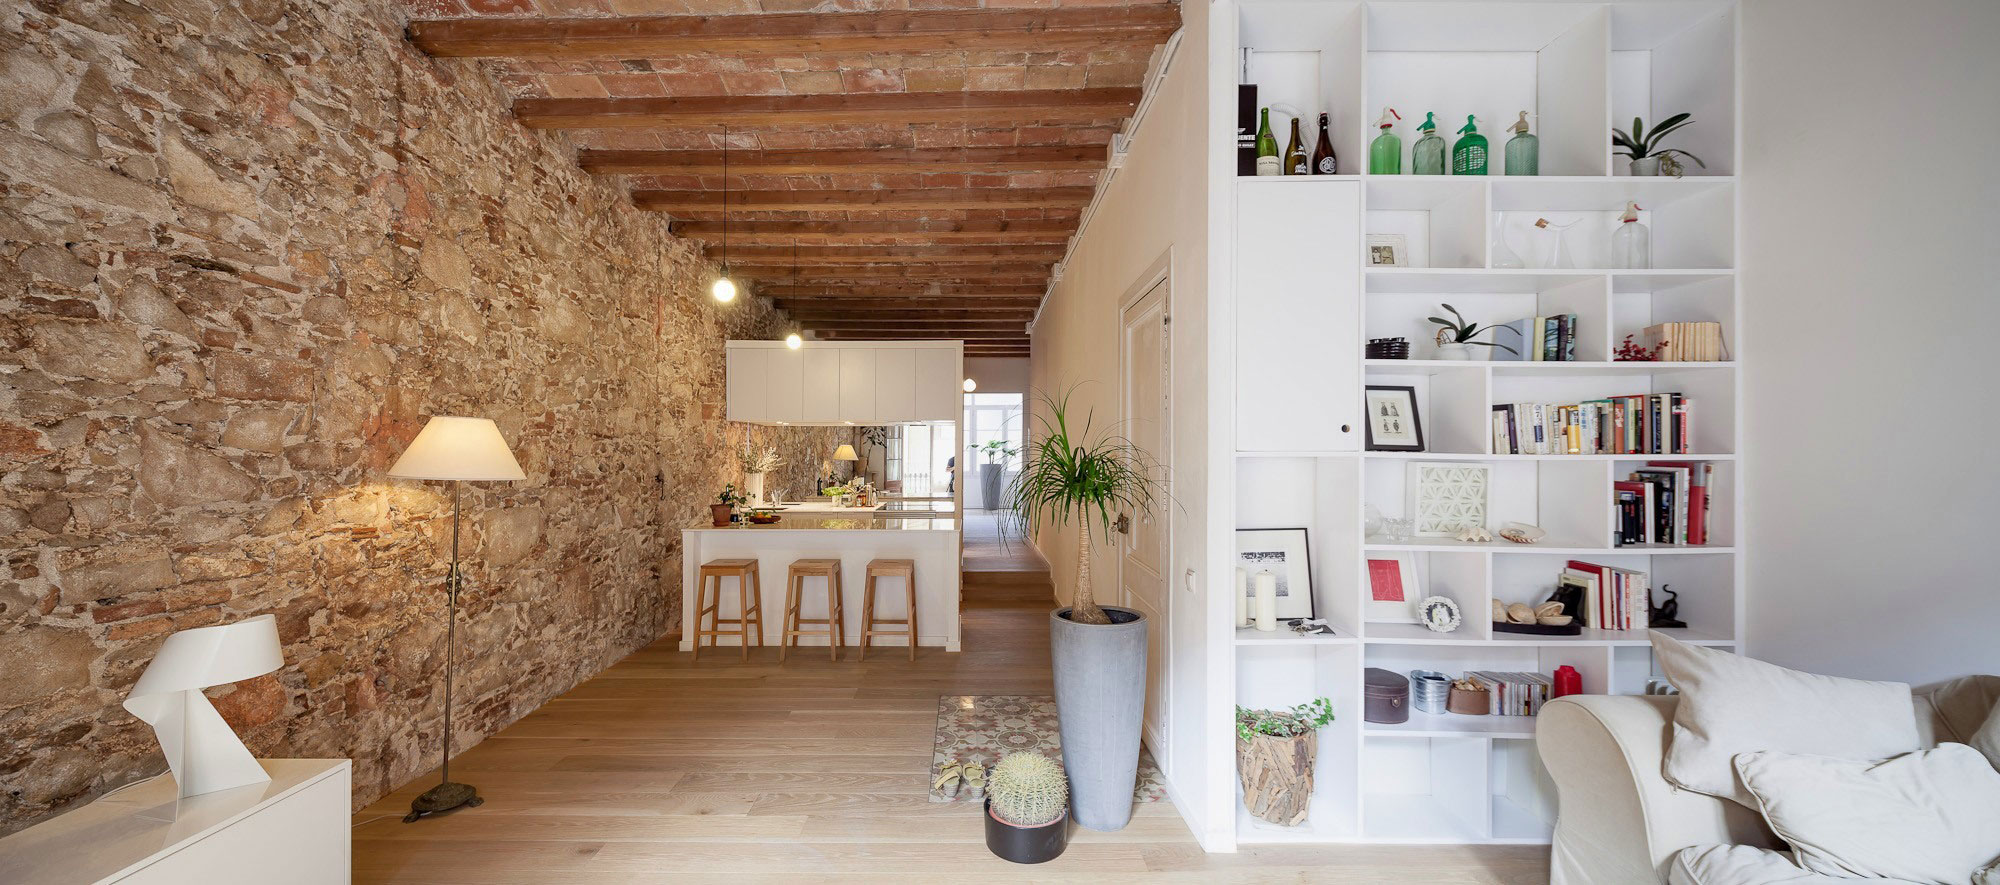 Renovation-Apartment-in-Les-Corts-living-room-sofa